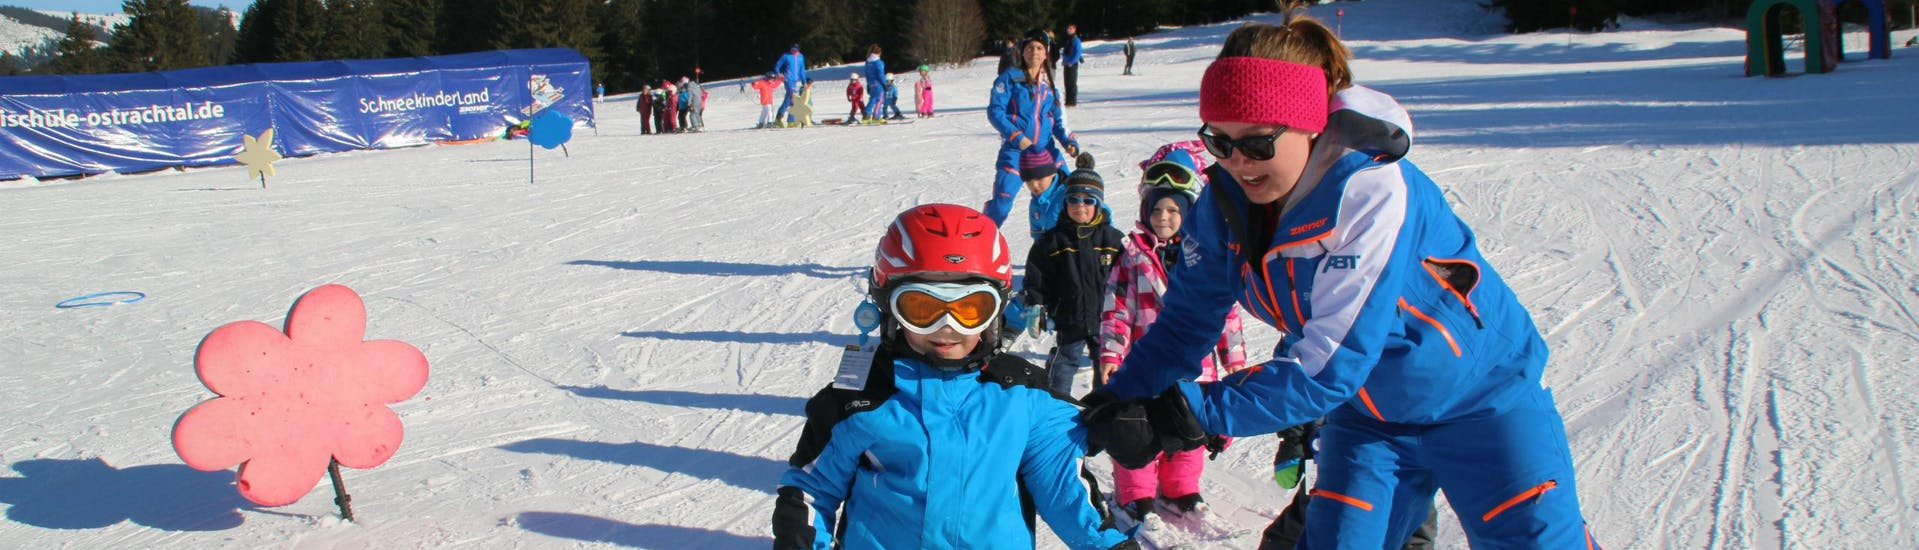 Kids Ski Lessons (3-12 y.) for All Levels with Ski & Snowboard School Ostrachtal - Hero image